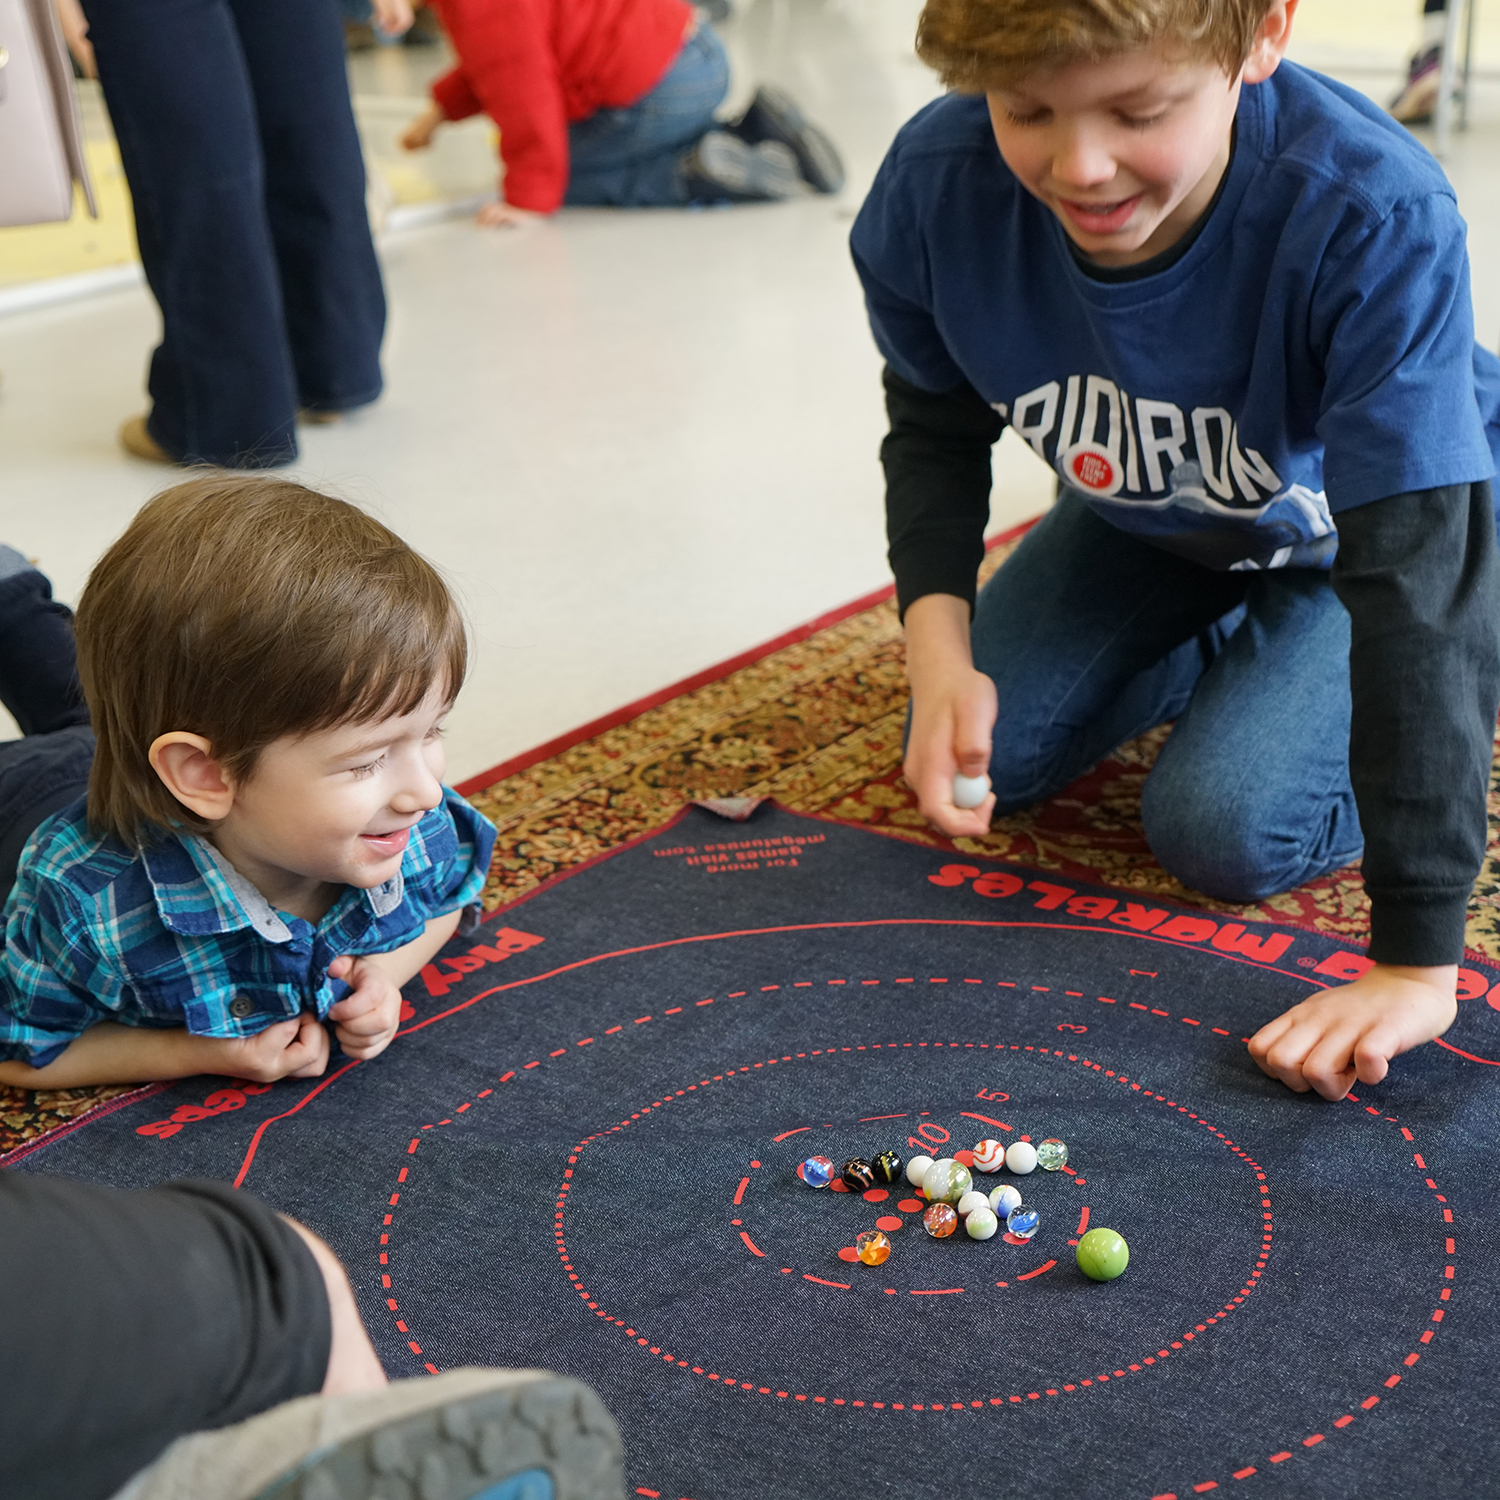 Two small boys playing marbles on the floor